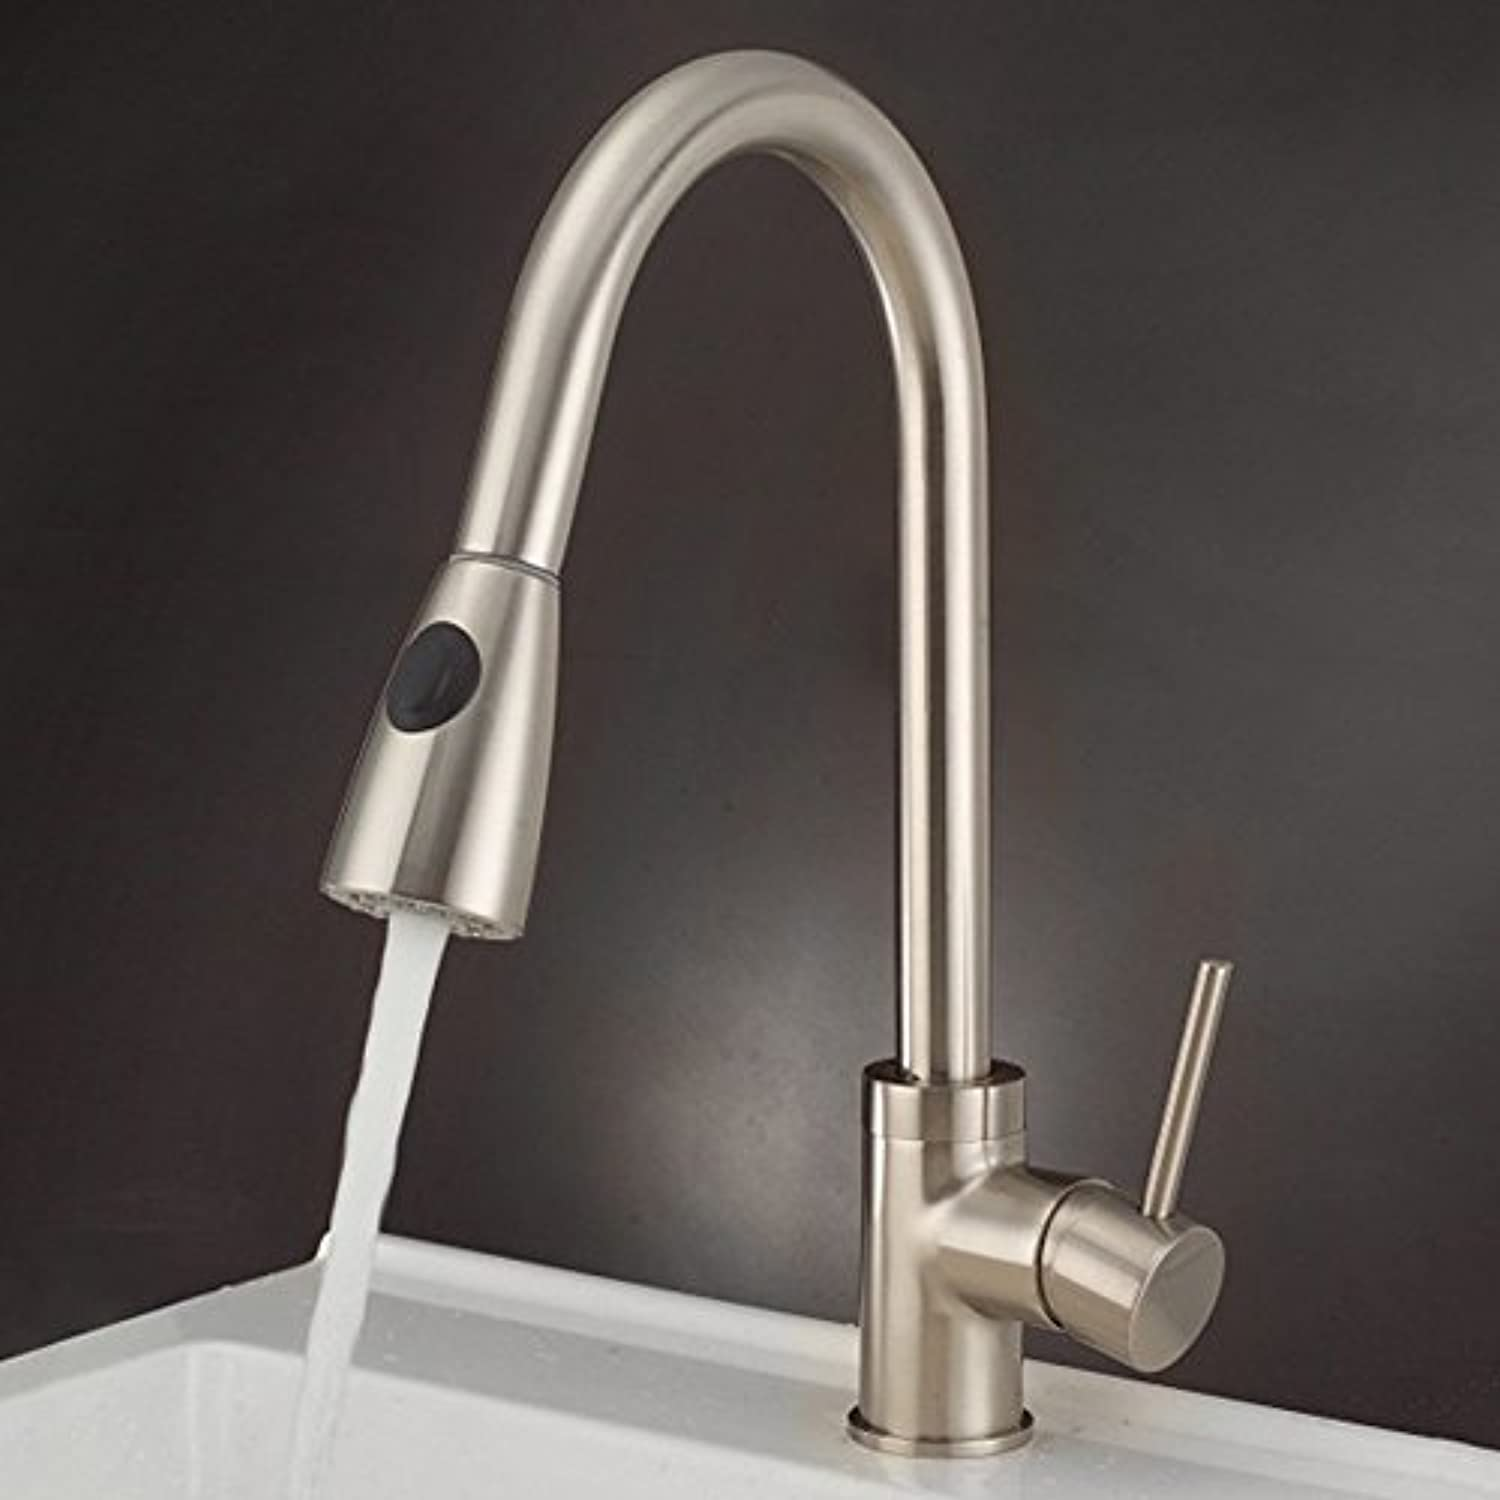 Hlluya Professional Sink Mixer Tap Kitchen Faucet Pull the kitchen sink Faucet